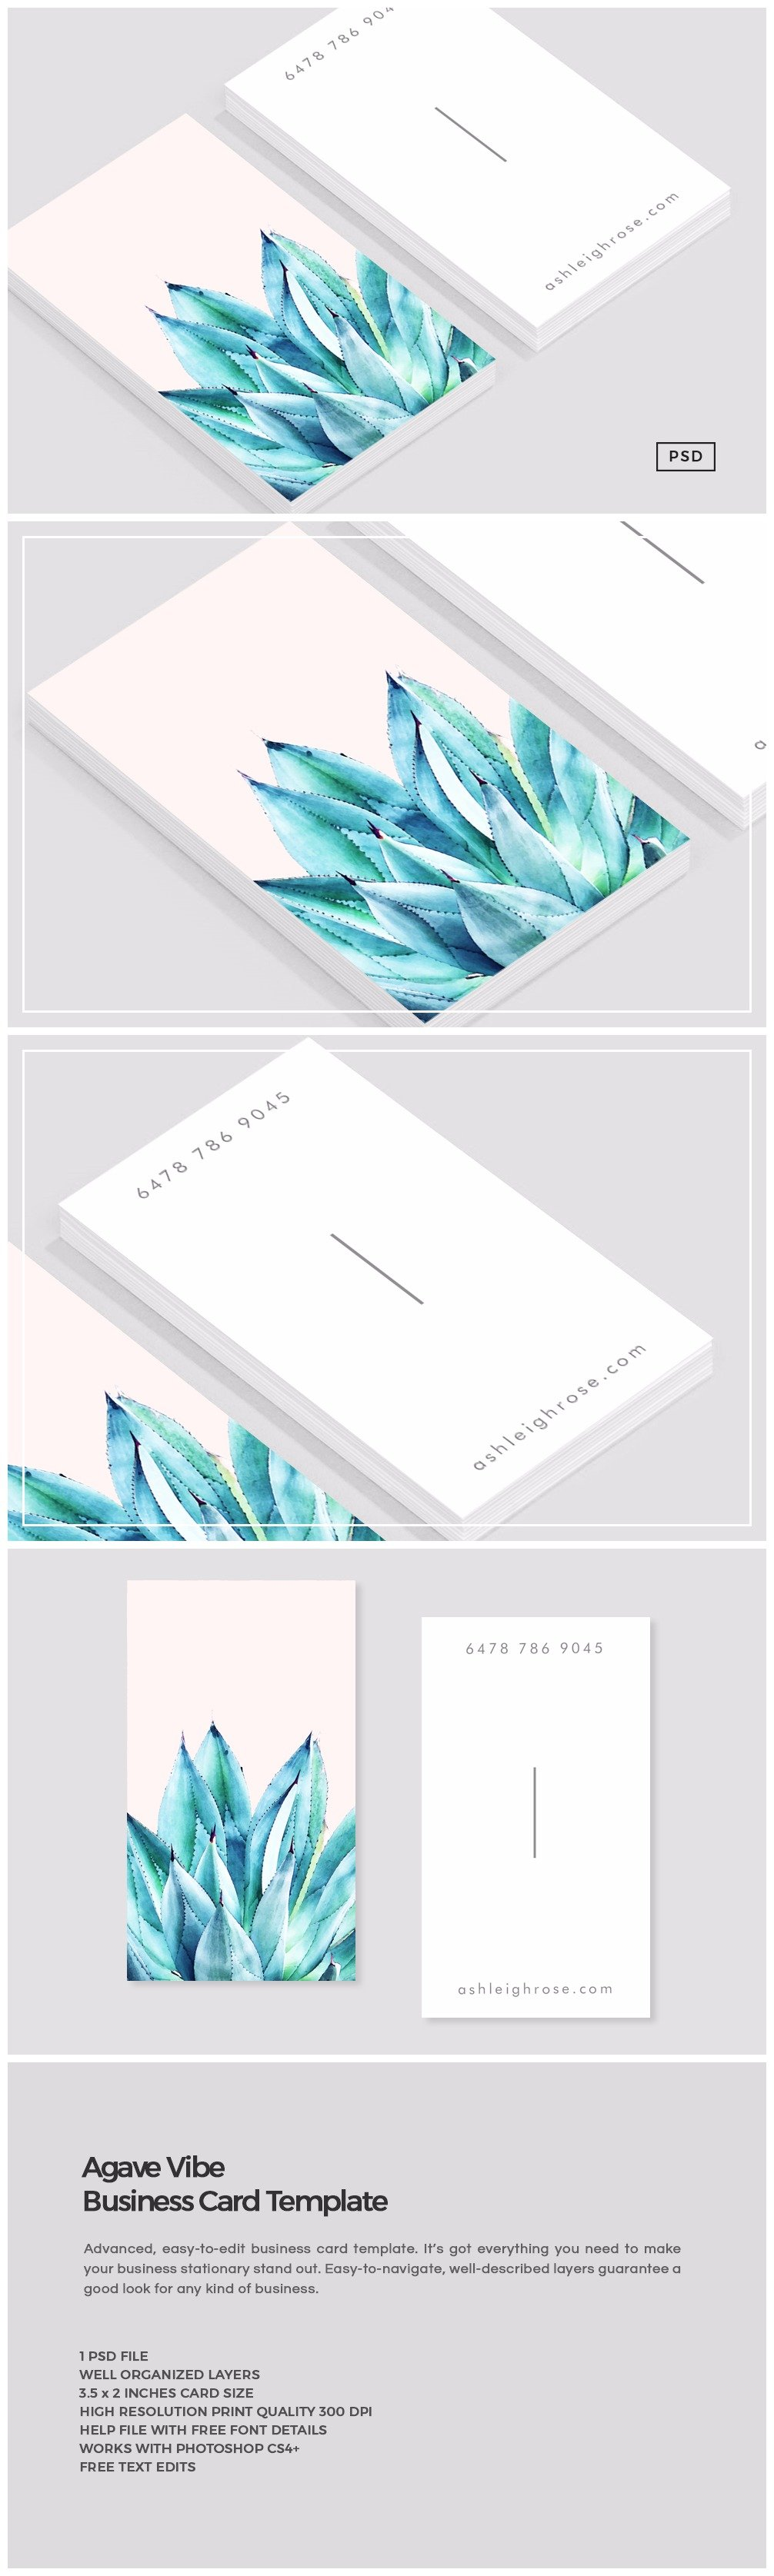 Agave vibe business card template business card templates agave vibe business card template business card templates creative market cheaphphosting Image collections